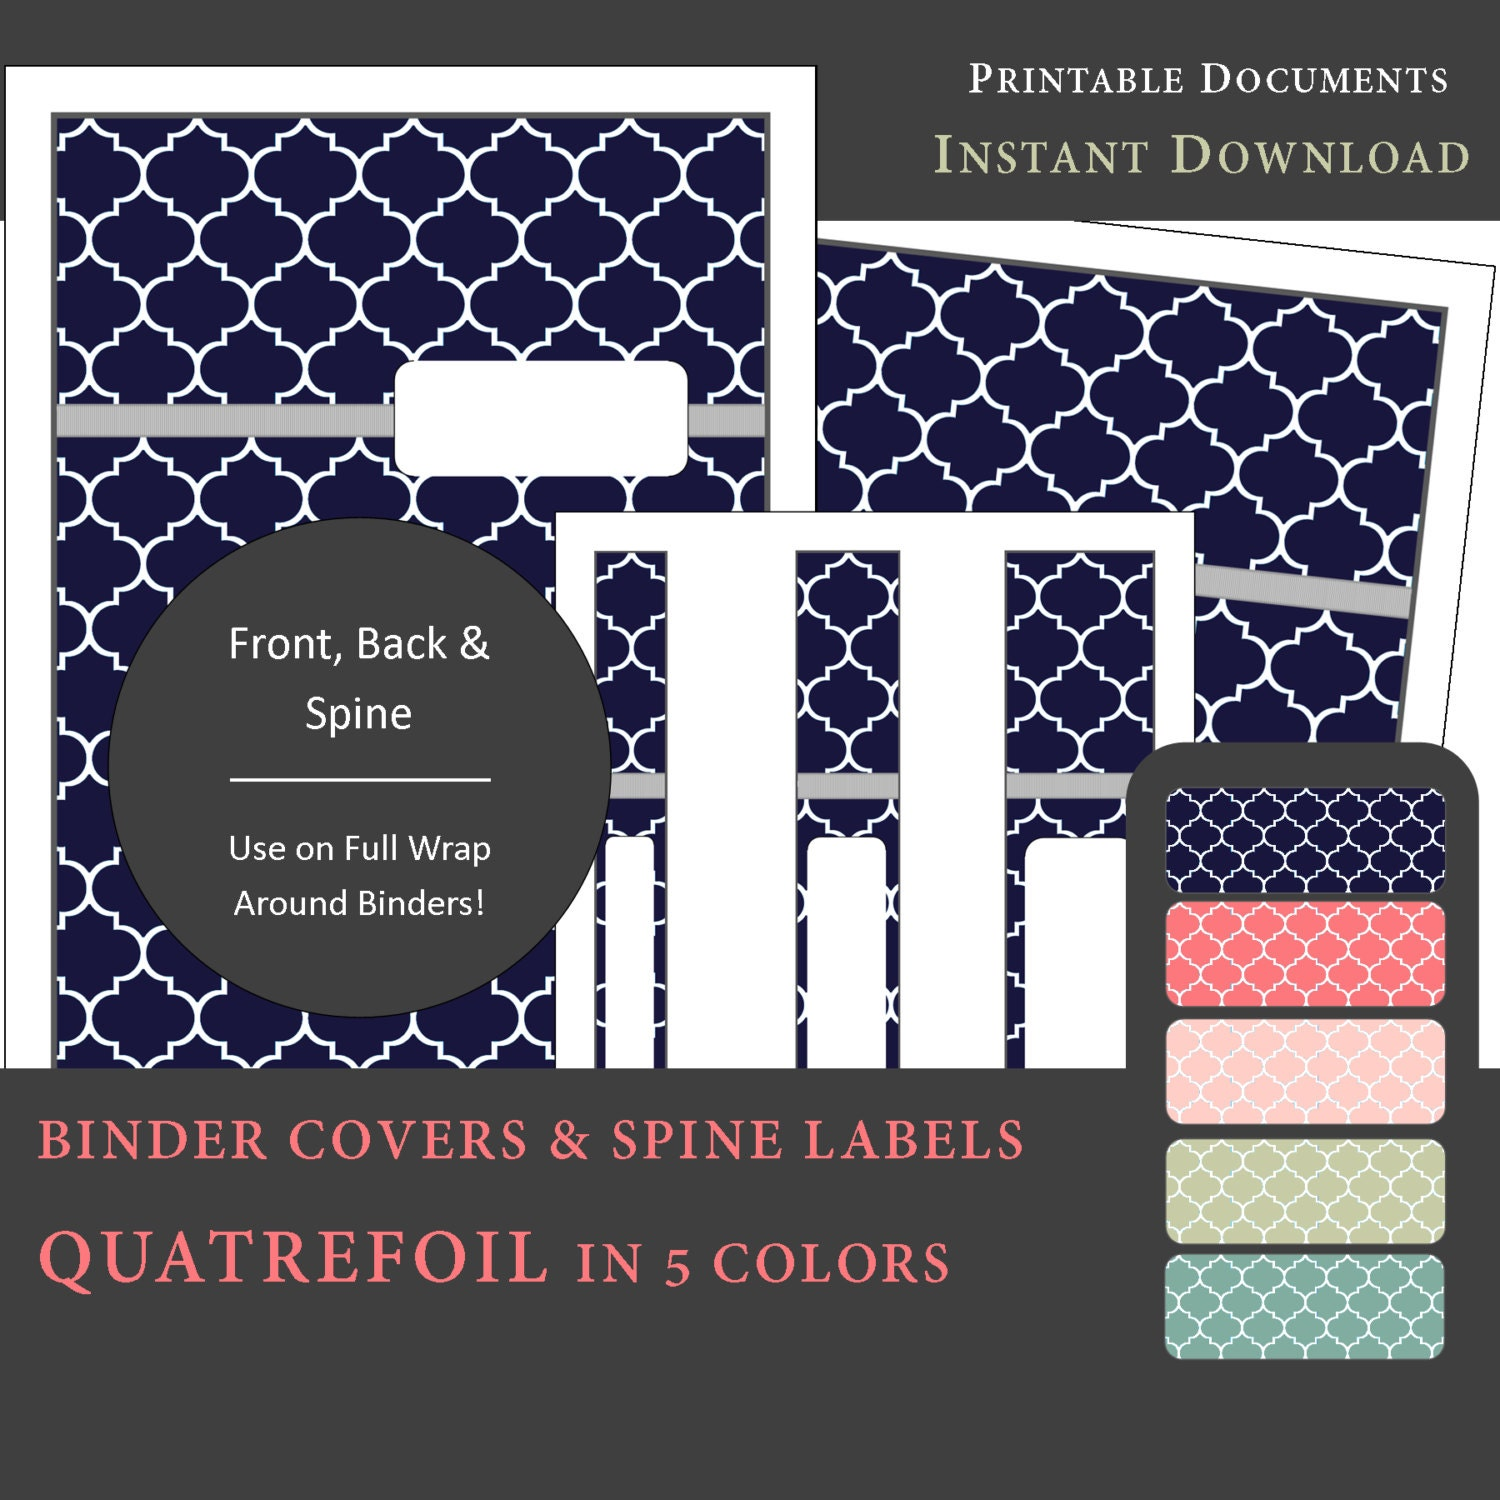 Printable Binder Covers & Spine Label Inserts QUATREFOIL